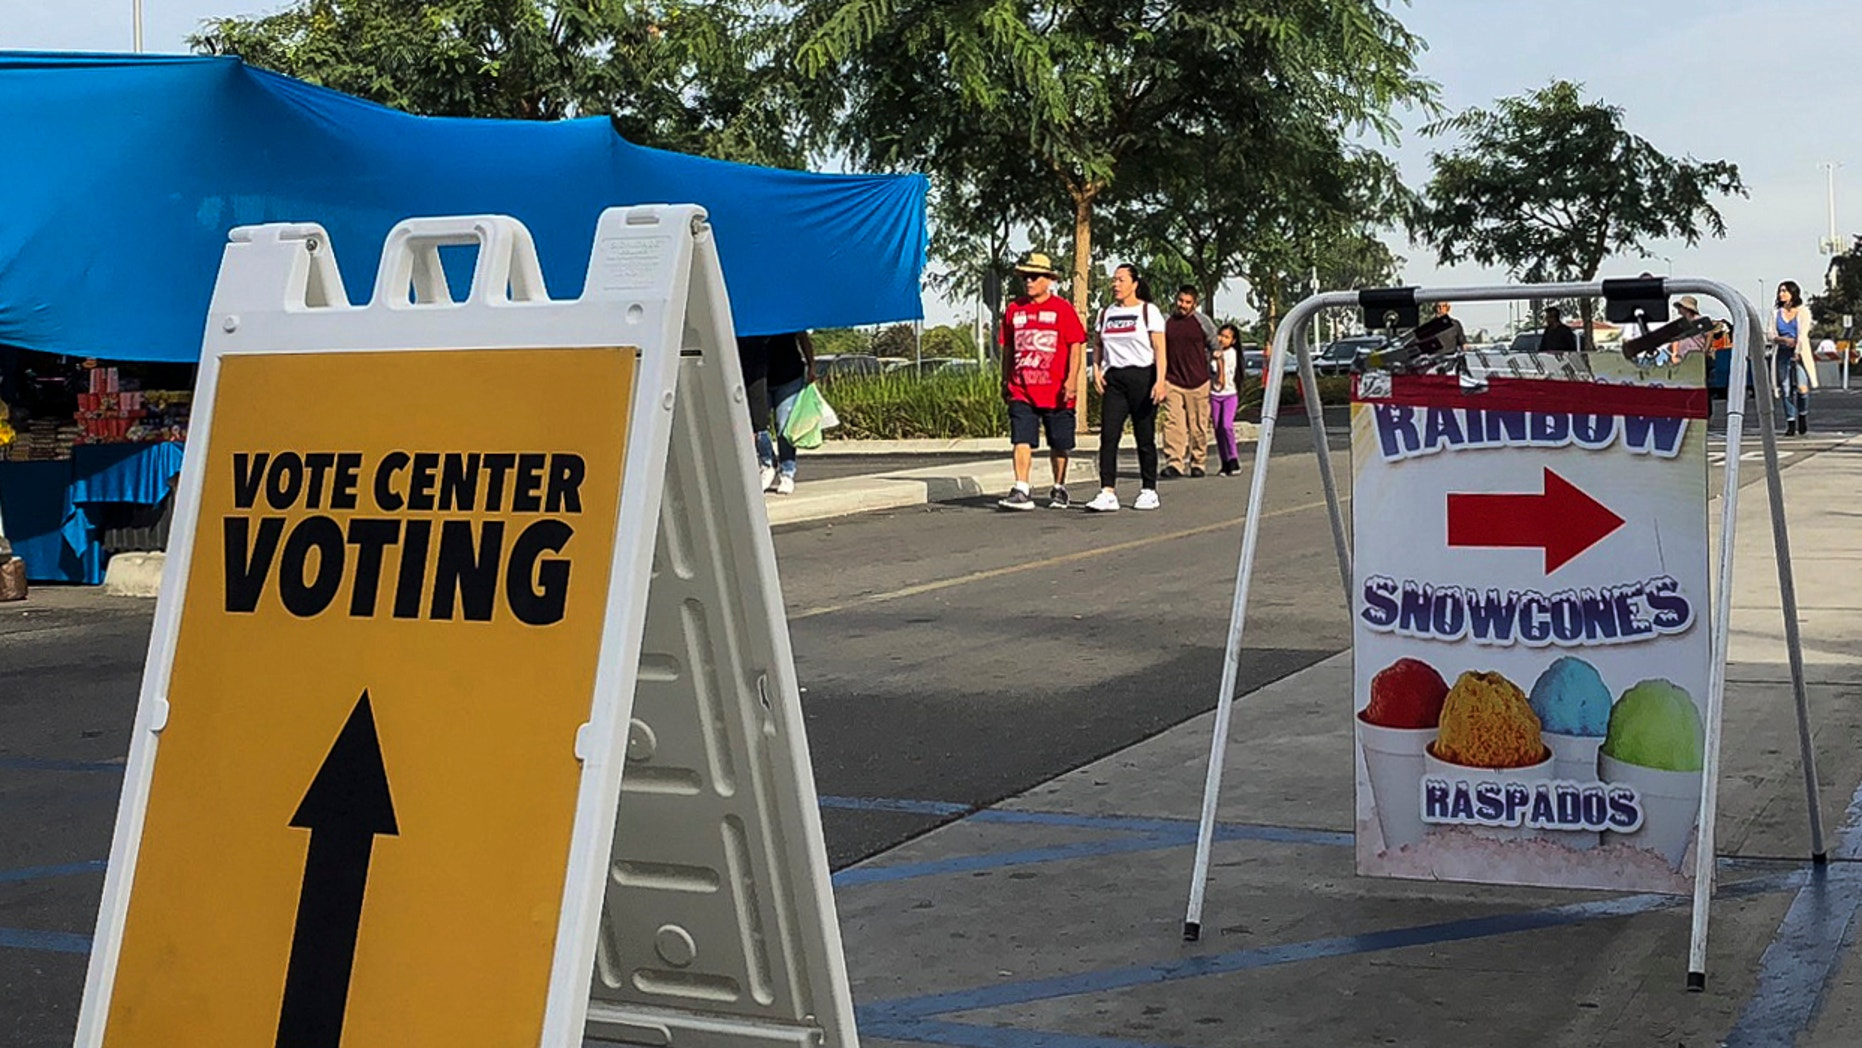 An Orange County registrar pop-up voting location is seen at the Golden West College in Huntington Beach, Calif., Sunday, Nov. 4, 2018. (AP Photo/Amy Taxin)